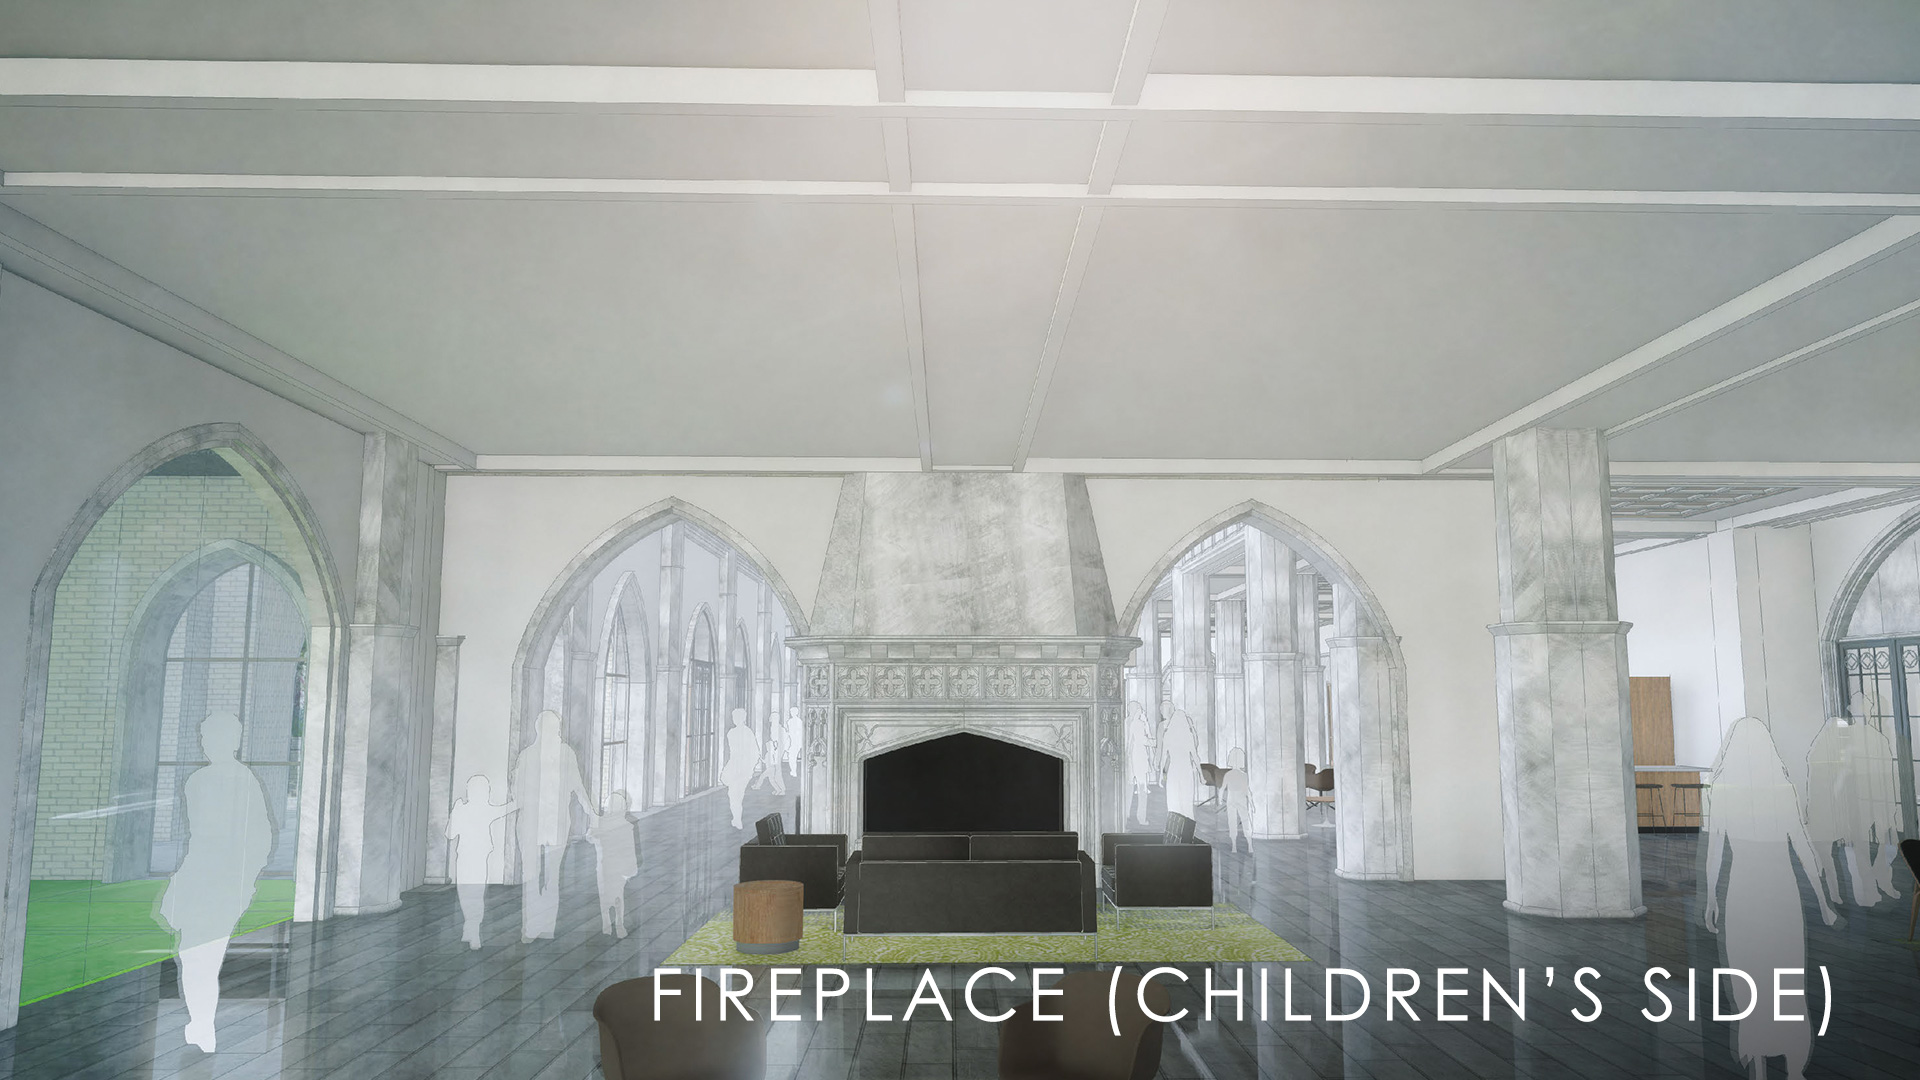 FireplaceChildrensSide-1920x1080.jpg